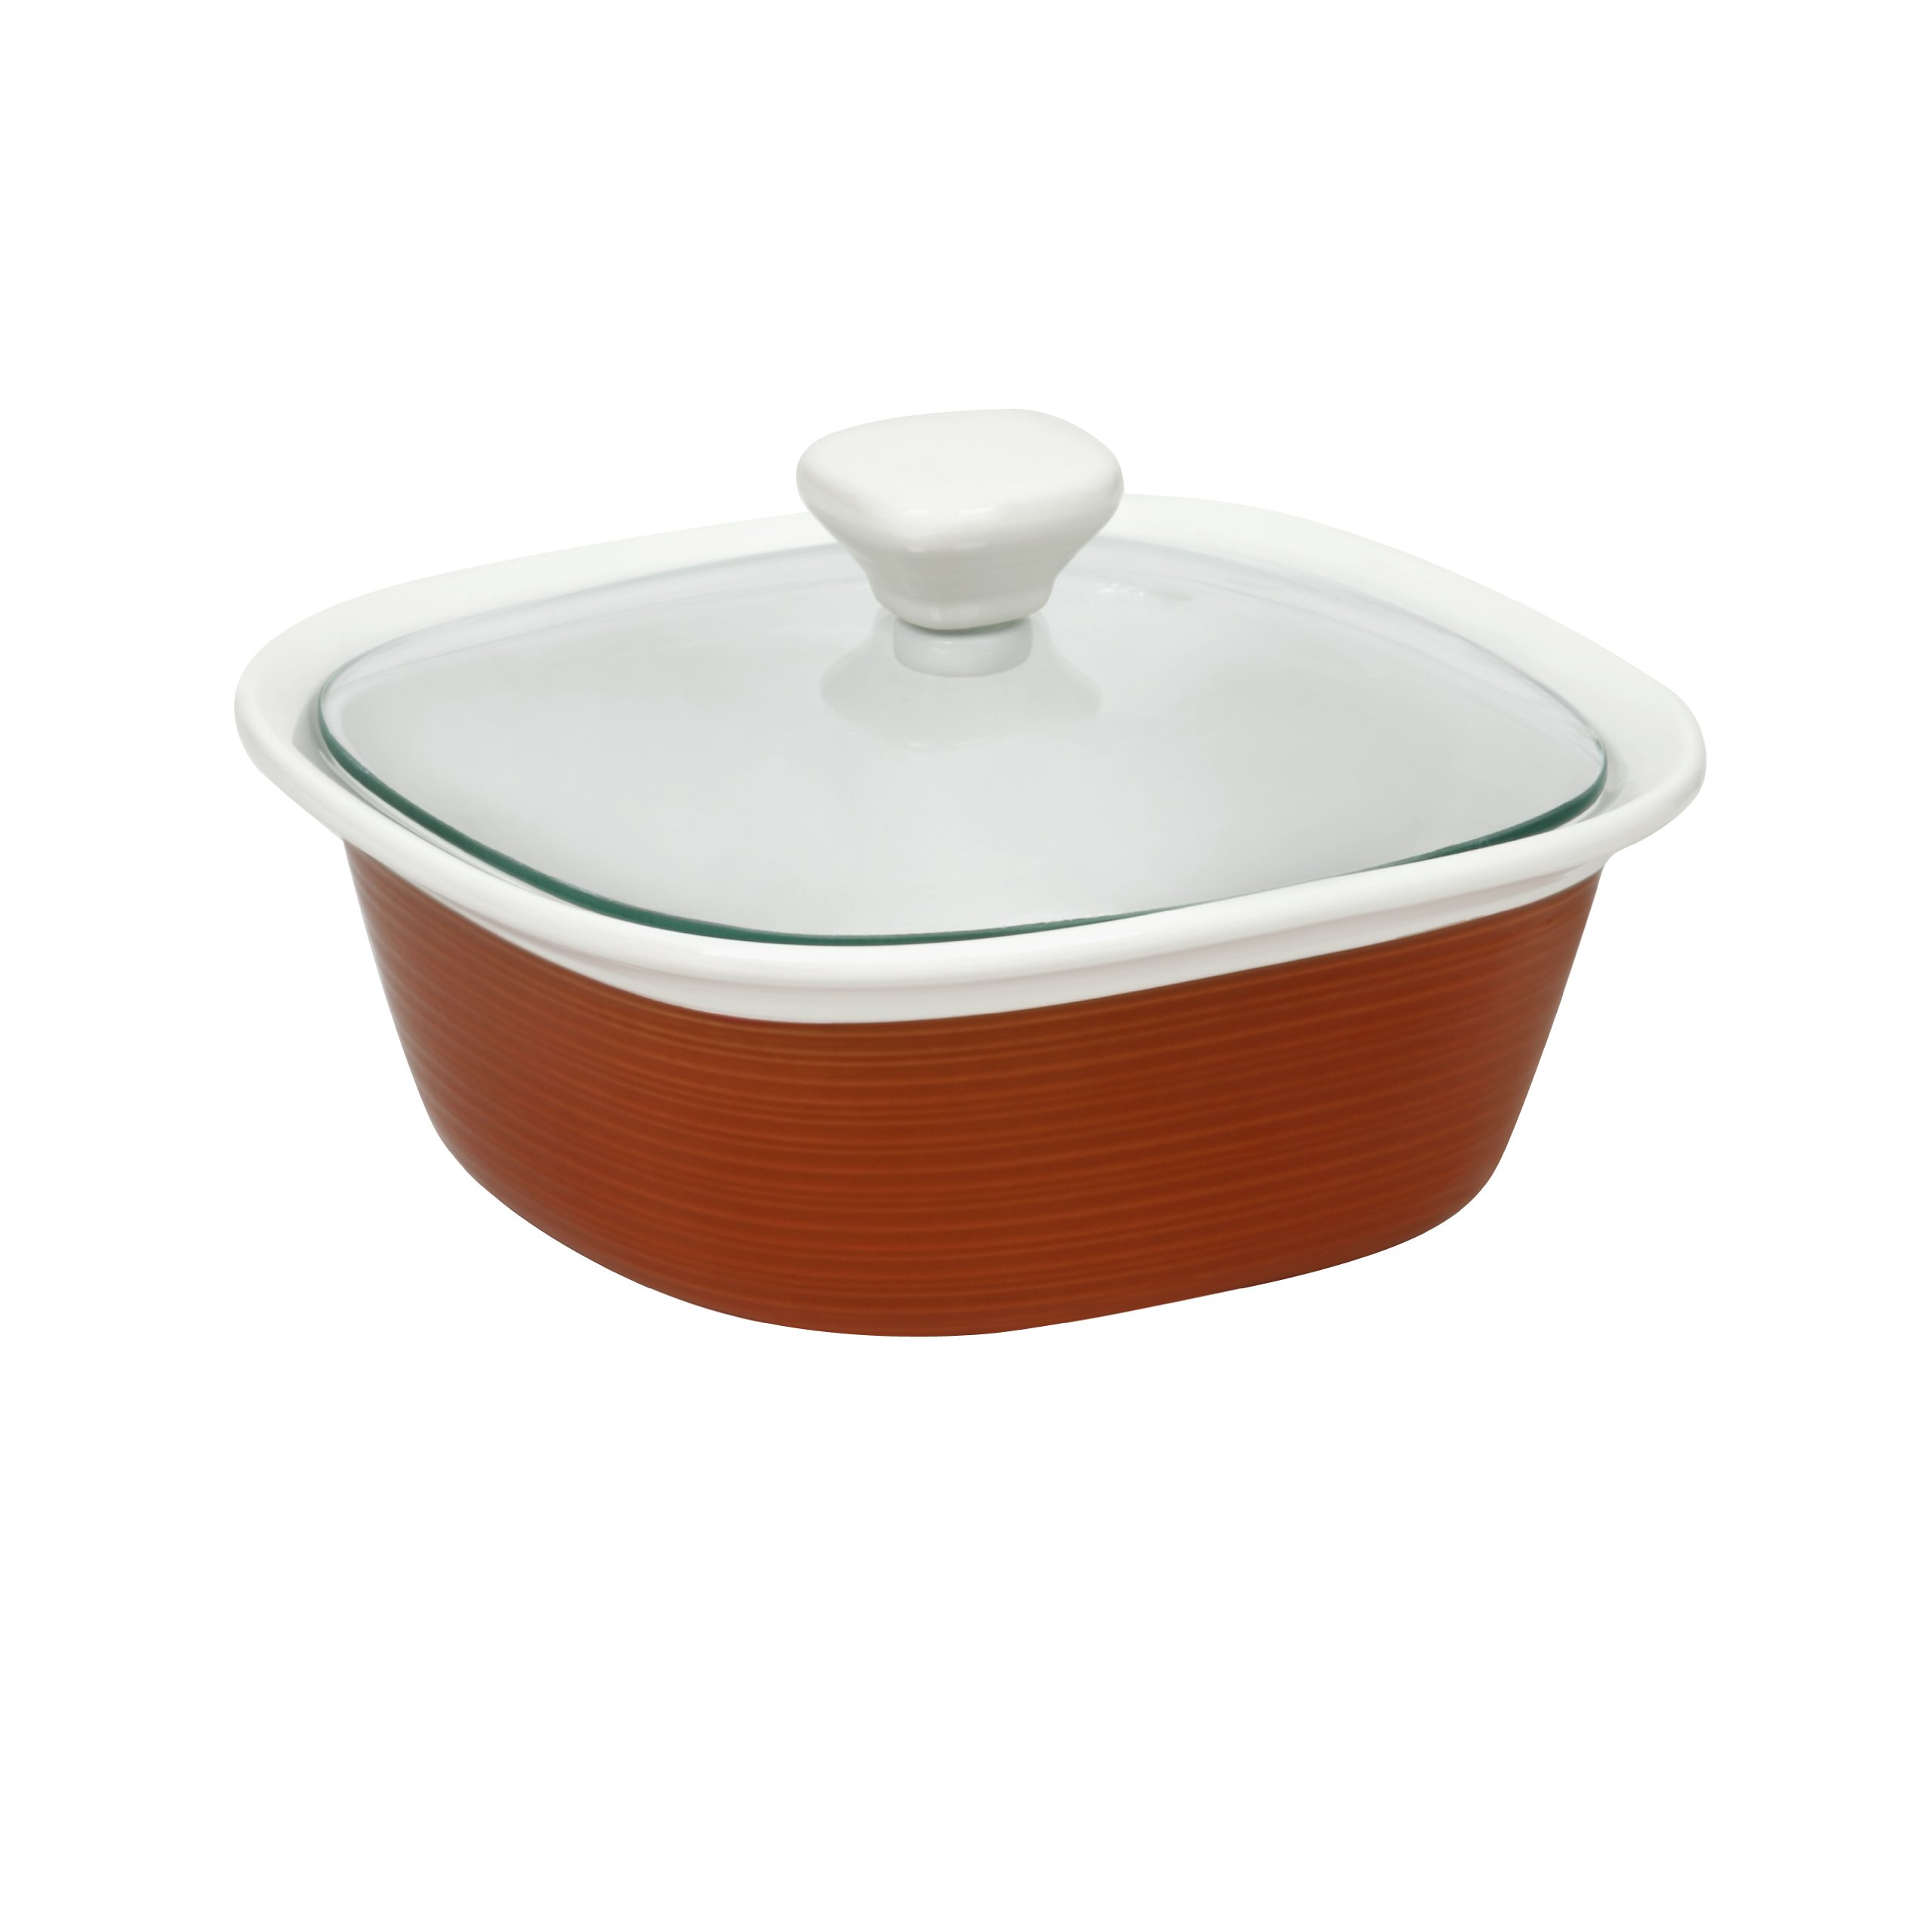 CorningWare Etch 1.5 Quart with Glass Cover in Brick